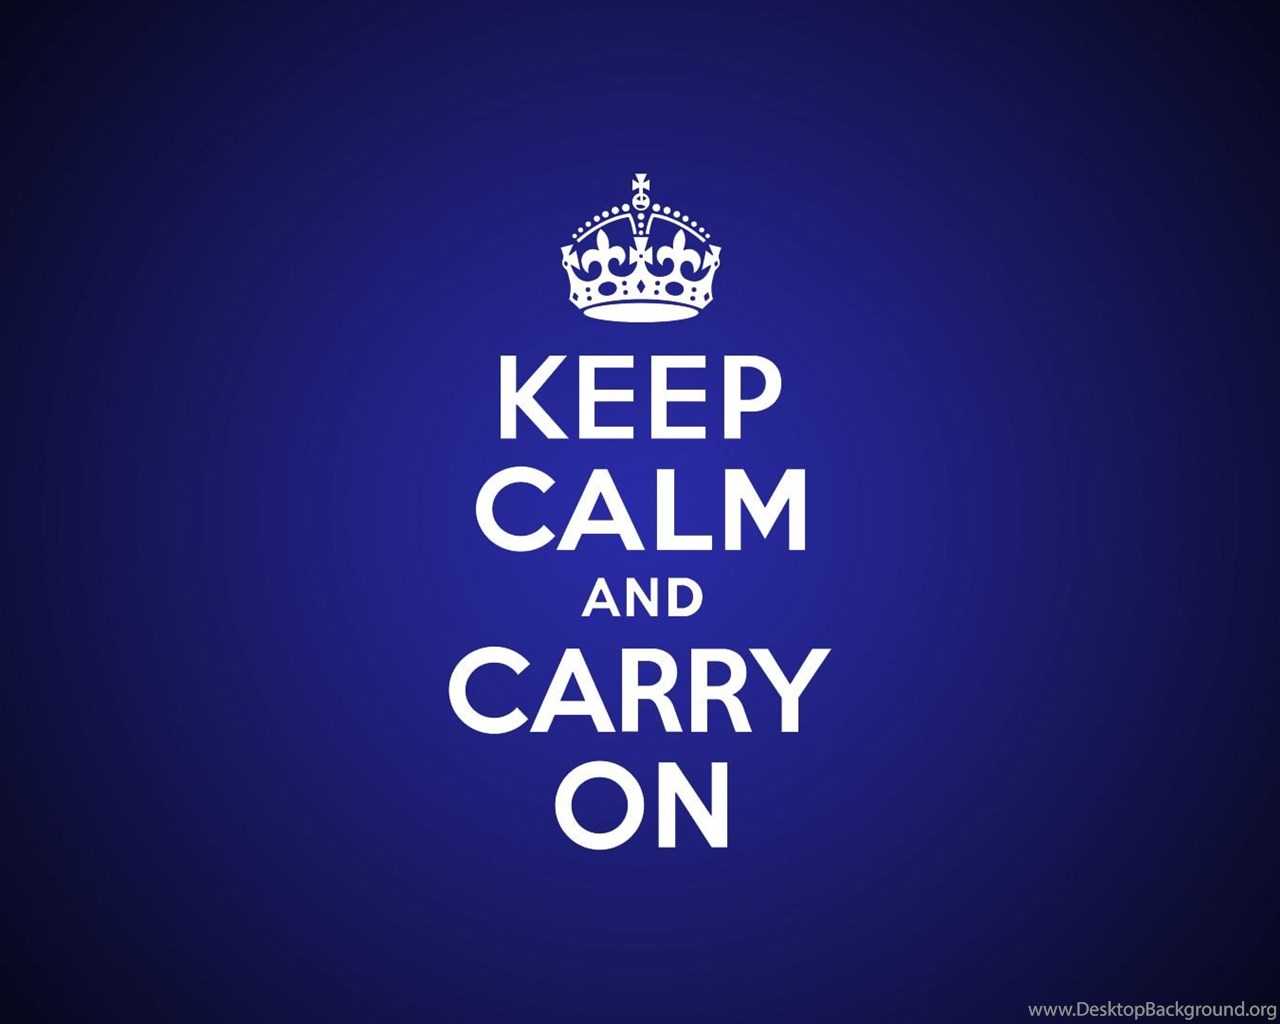 1920x1080px Keep Calm Wallpapers HD Quality Desktop Background